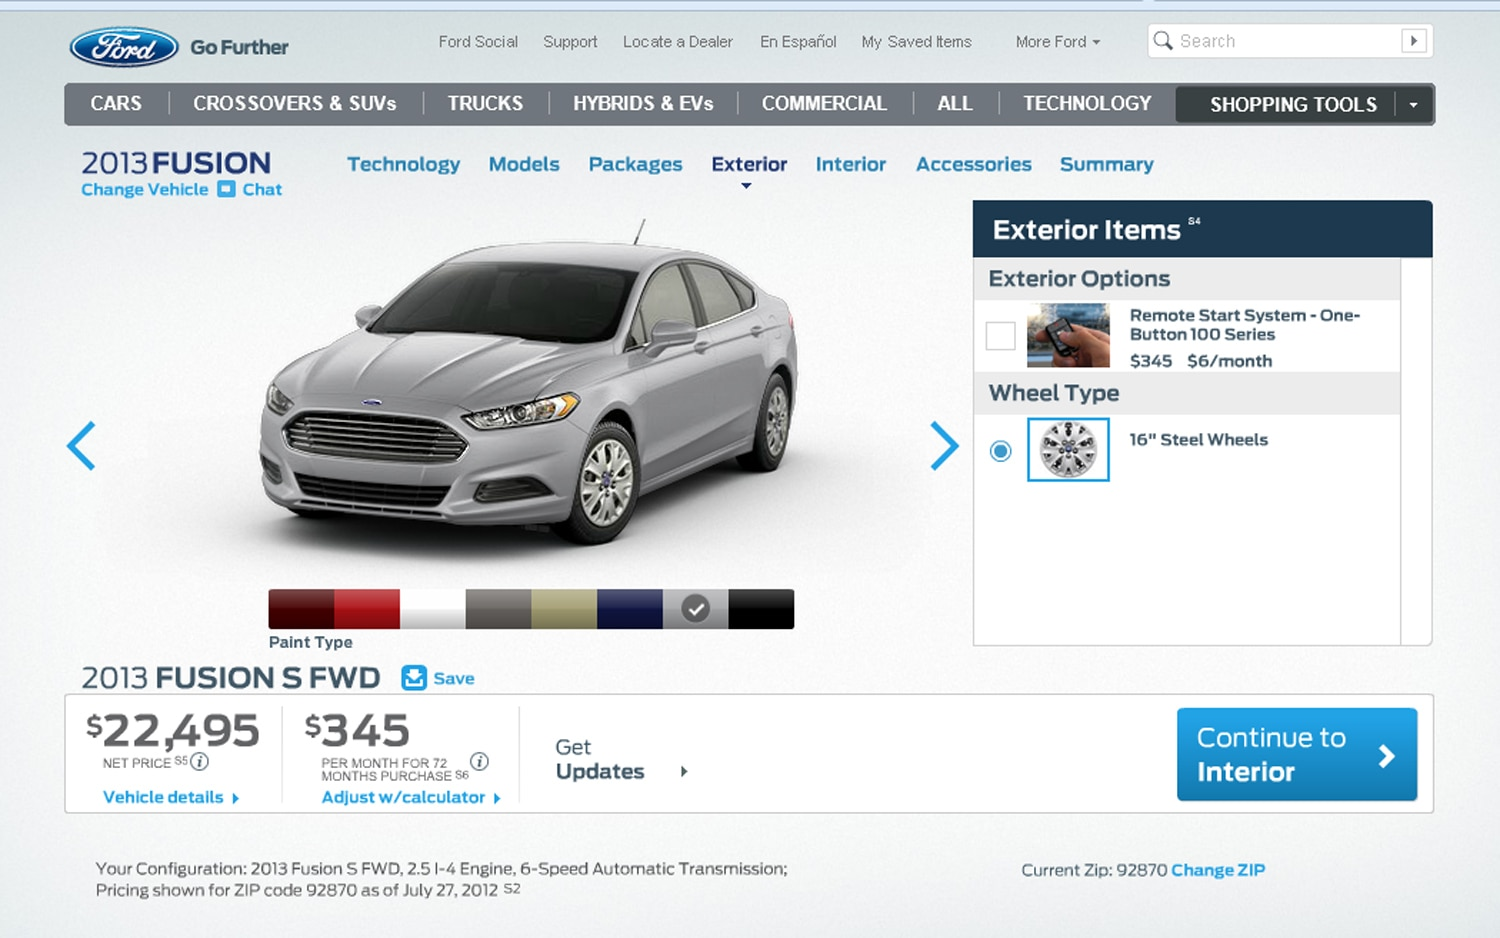 2013 Ford Fusion S FWD 2